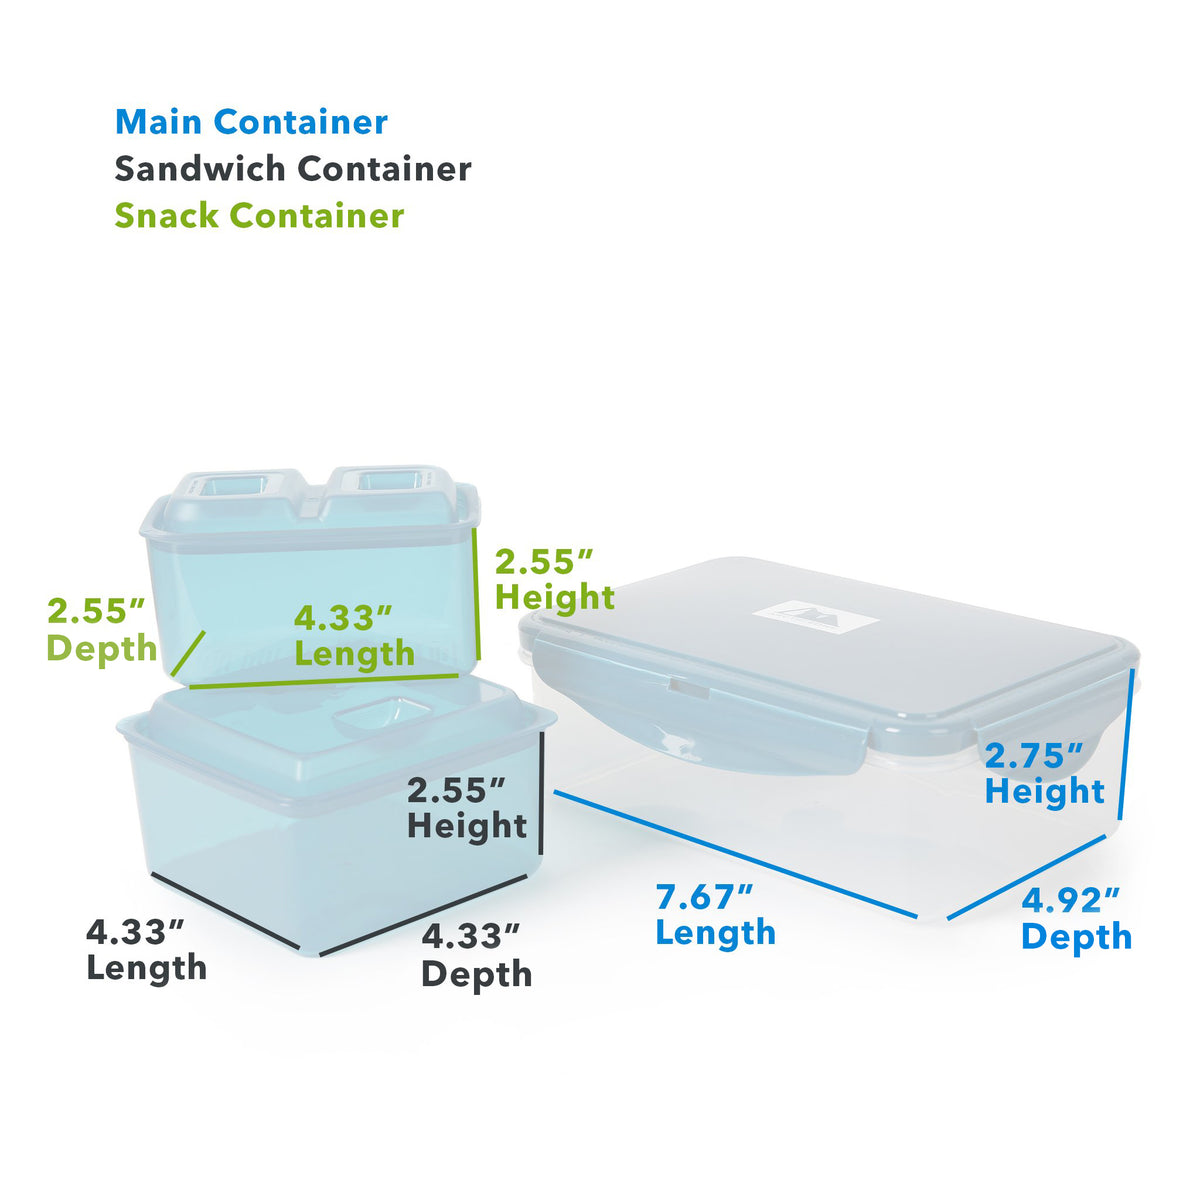 "Arctic Zone® High Performance Meal Prep Lunch Bag M.D. - Leafy Lime - Main Container (L x D x H) 7.67"" x 4.92"" x 2.75"", Sandwich Container : (L x D x H) 4.33"" x 4.33"" x 2.55"", Snack Container: (L x D x H) 4.33"" x 2.55"" x 2.55"""